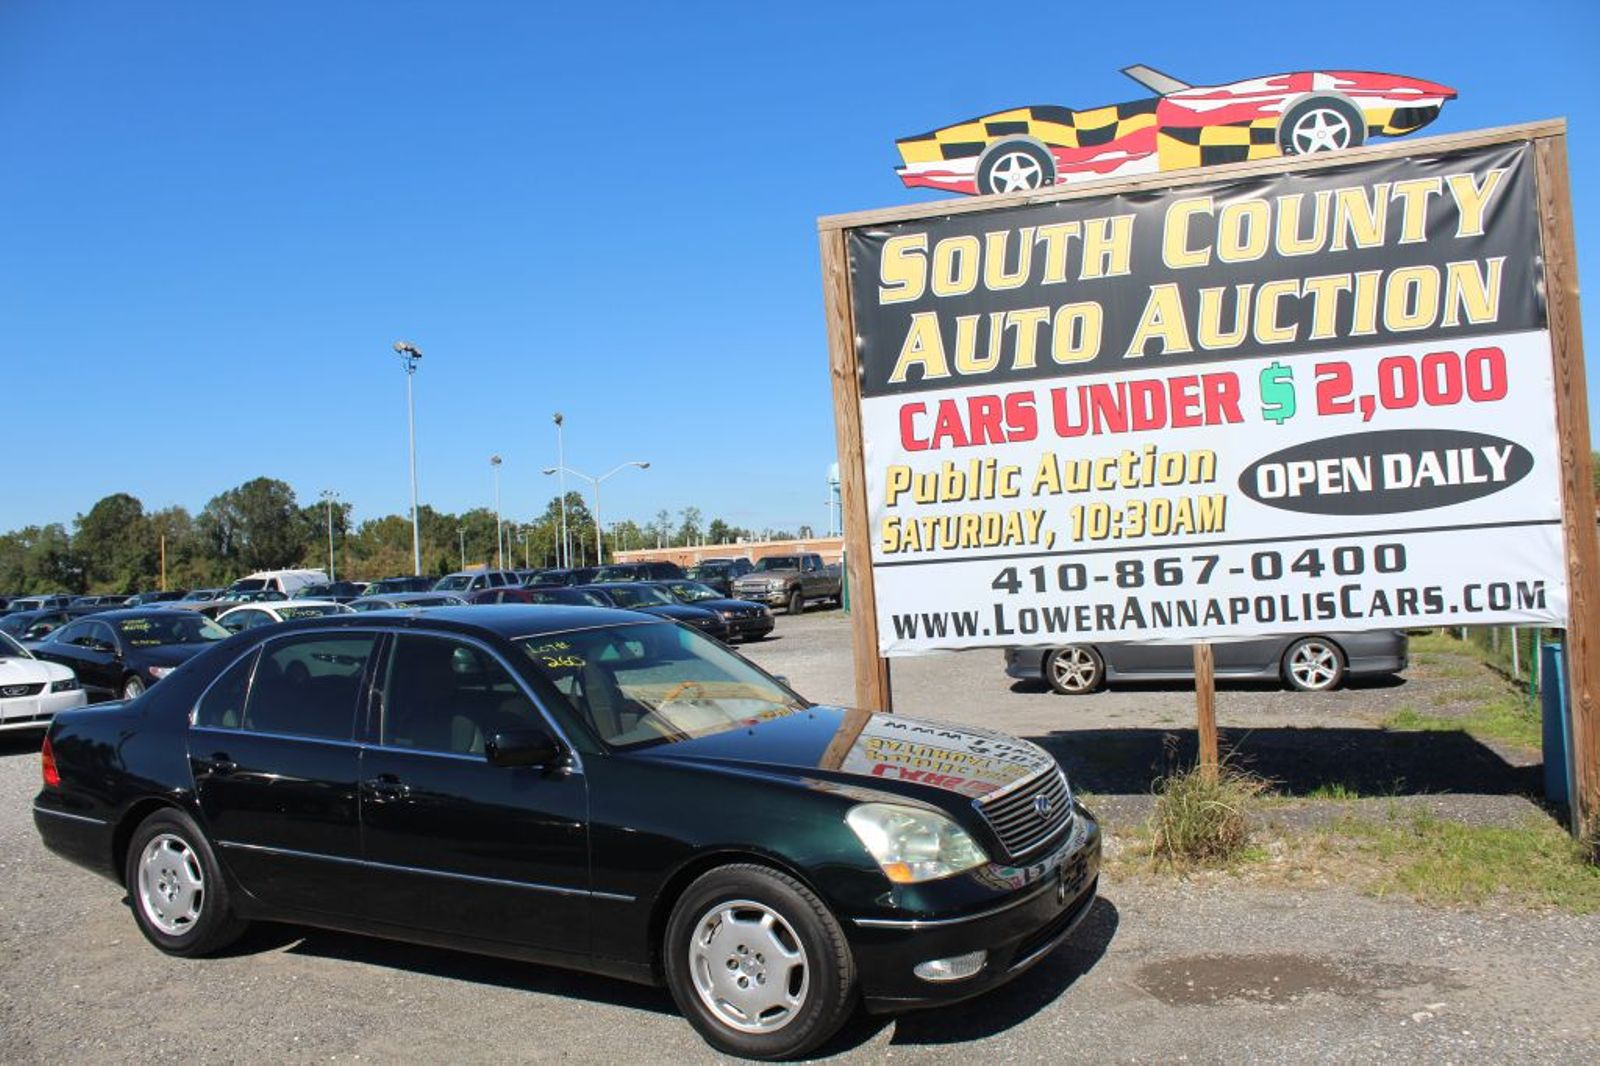 2002 Lexus Ls 430 City Md South County Public Auto Auction 2001 Hyundai Sonata Wiring Harness Srs In Harwood